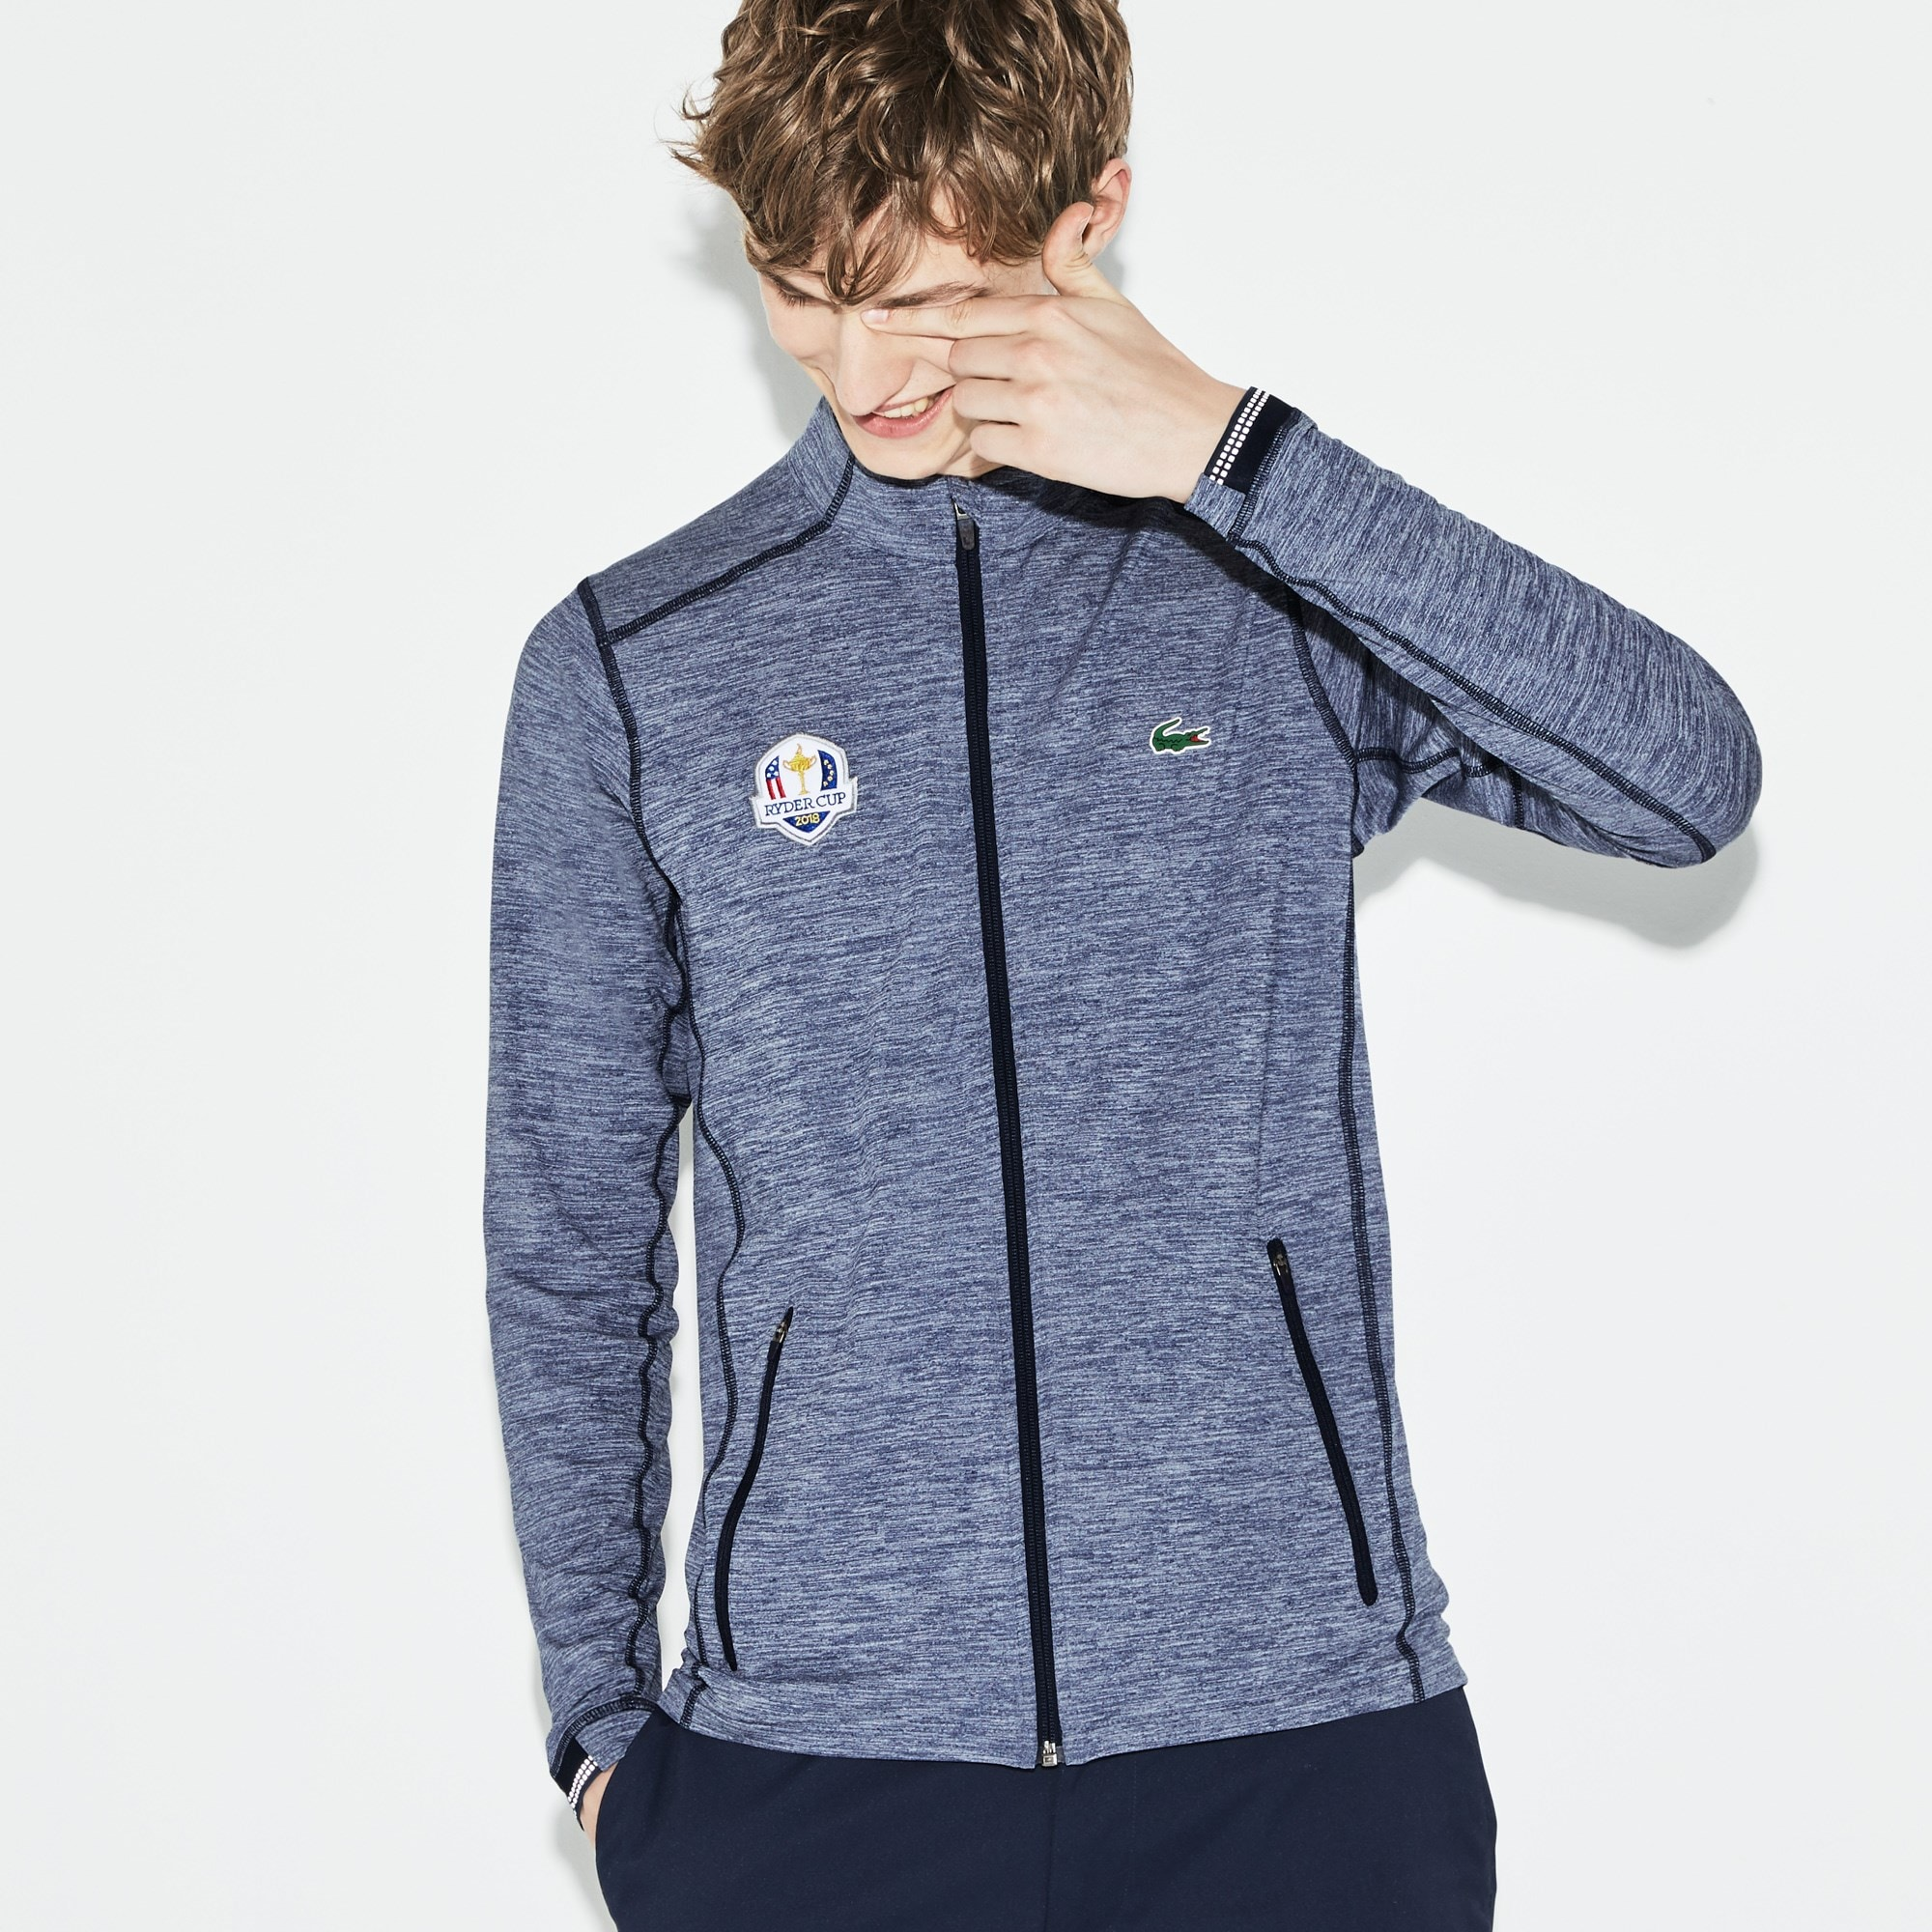 Men's Lacoste SPORT Ryder Cup Edition Zip Midlayer Golf Sweatshirt